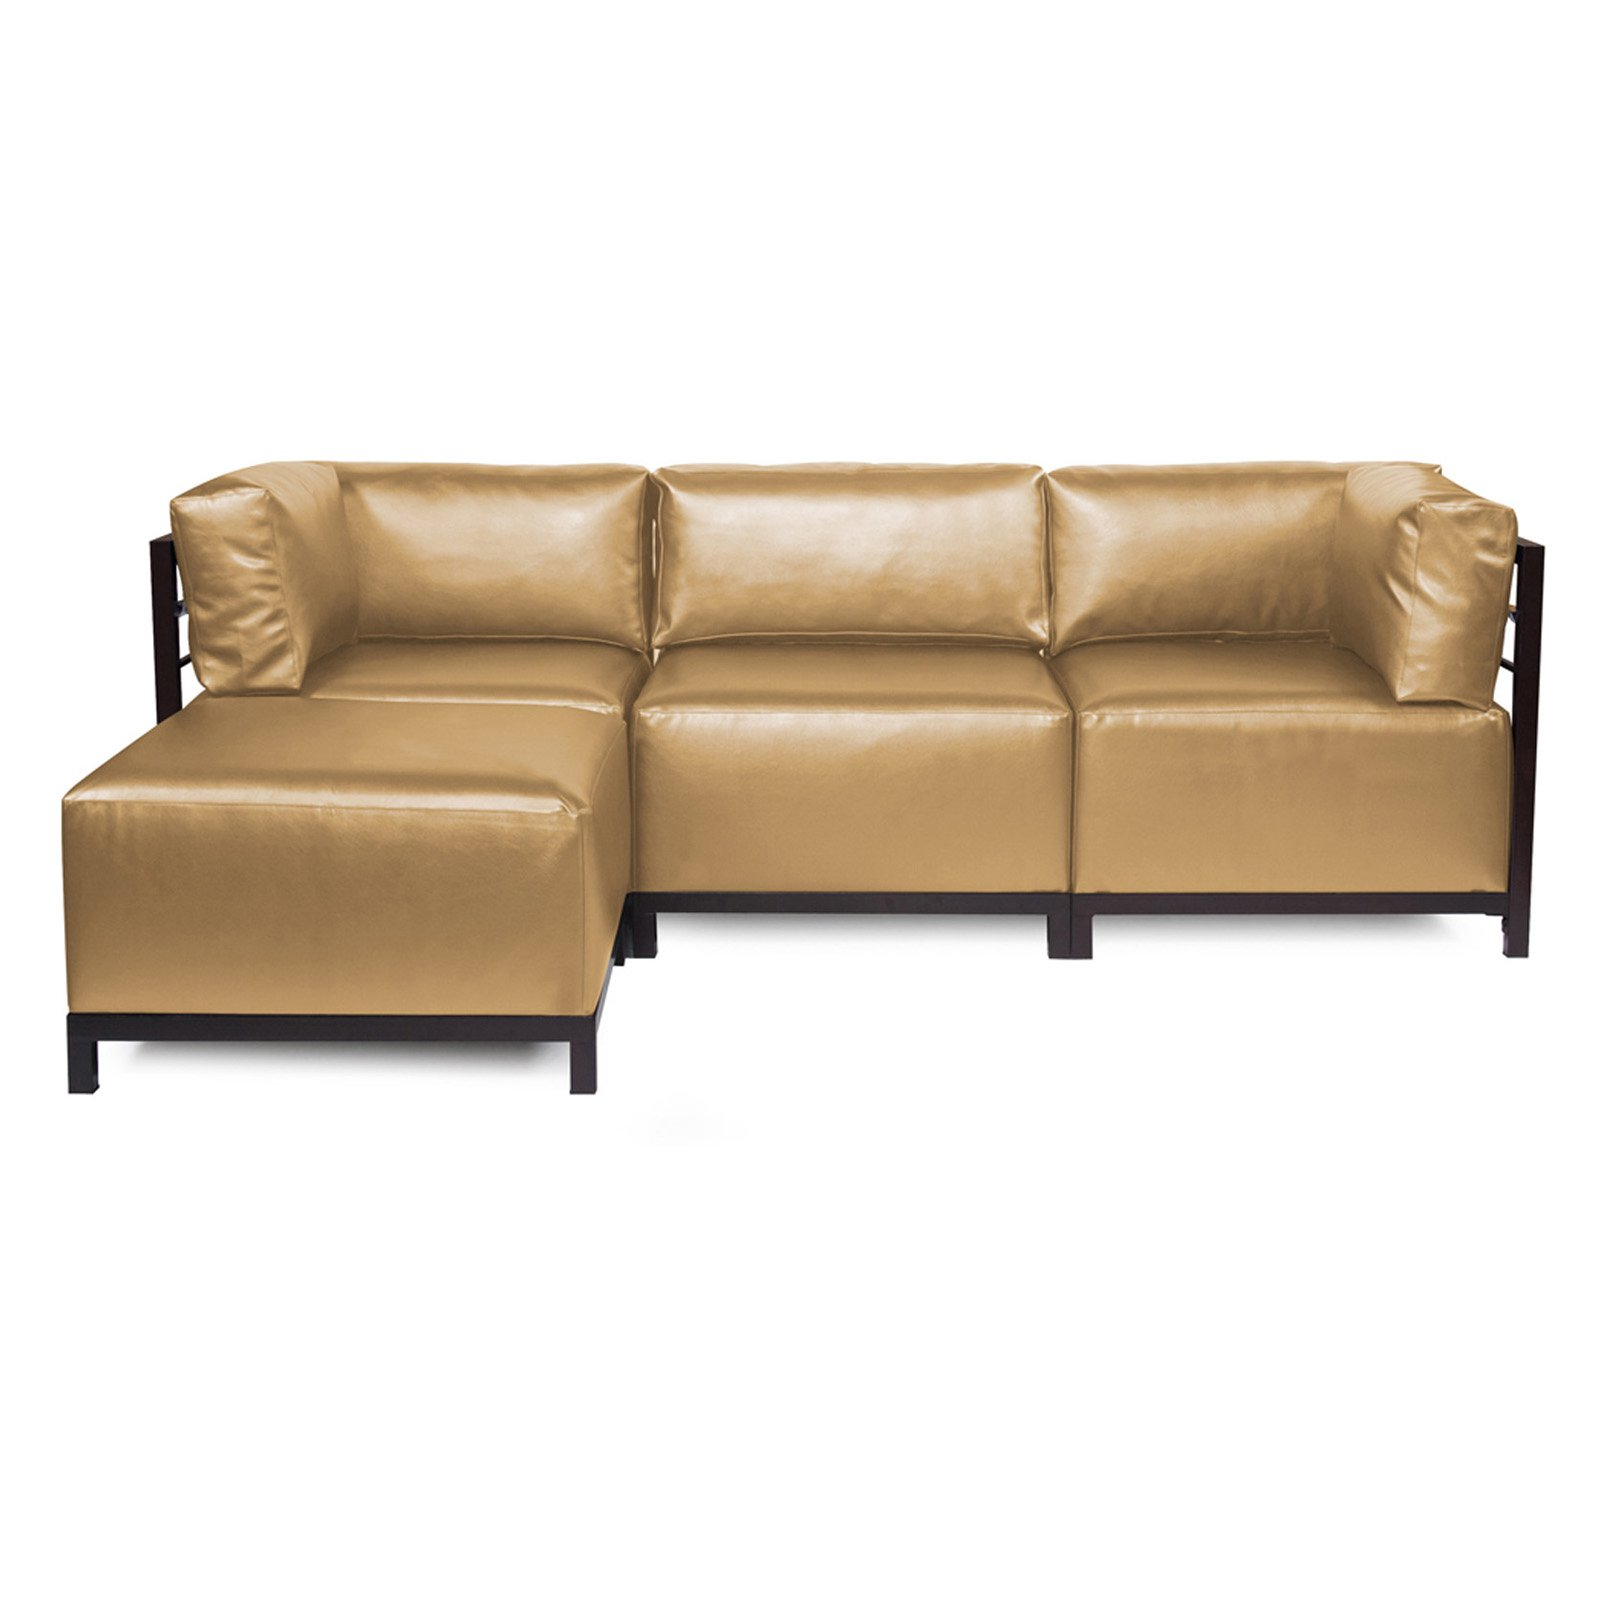 Howard elliott shimmer axis 4 piece sectional with titanium frame 95 5 wide pol walmart com